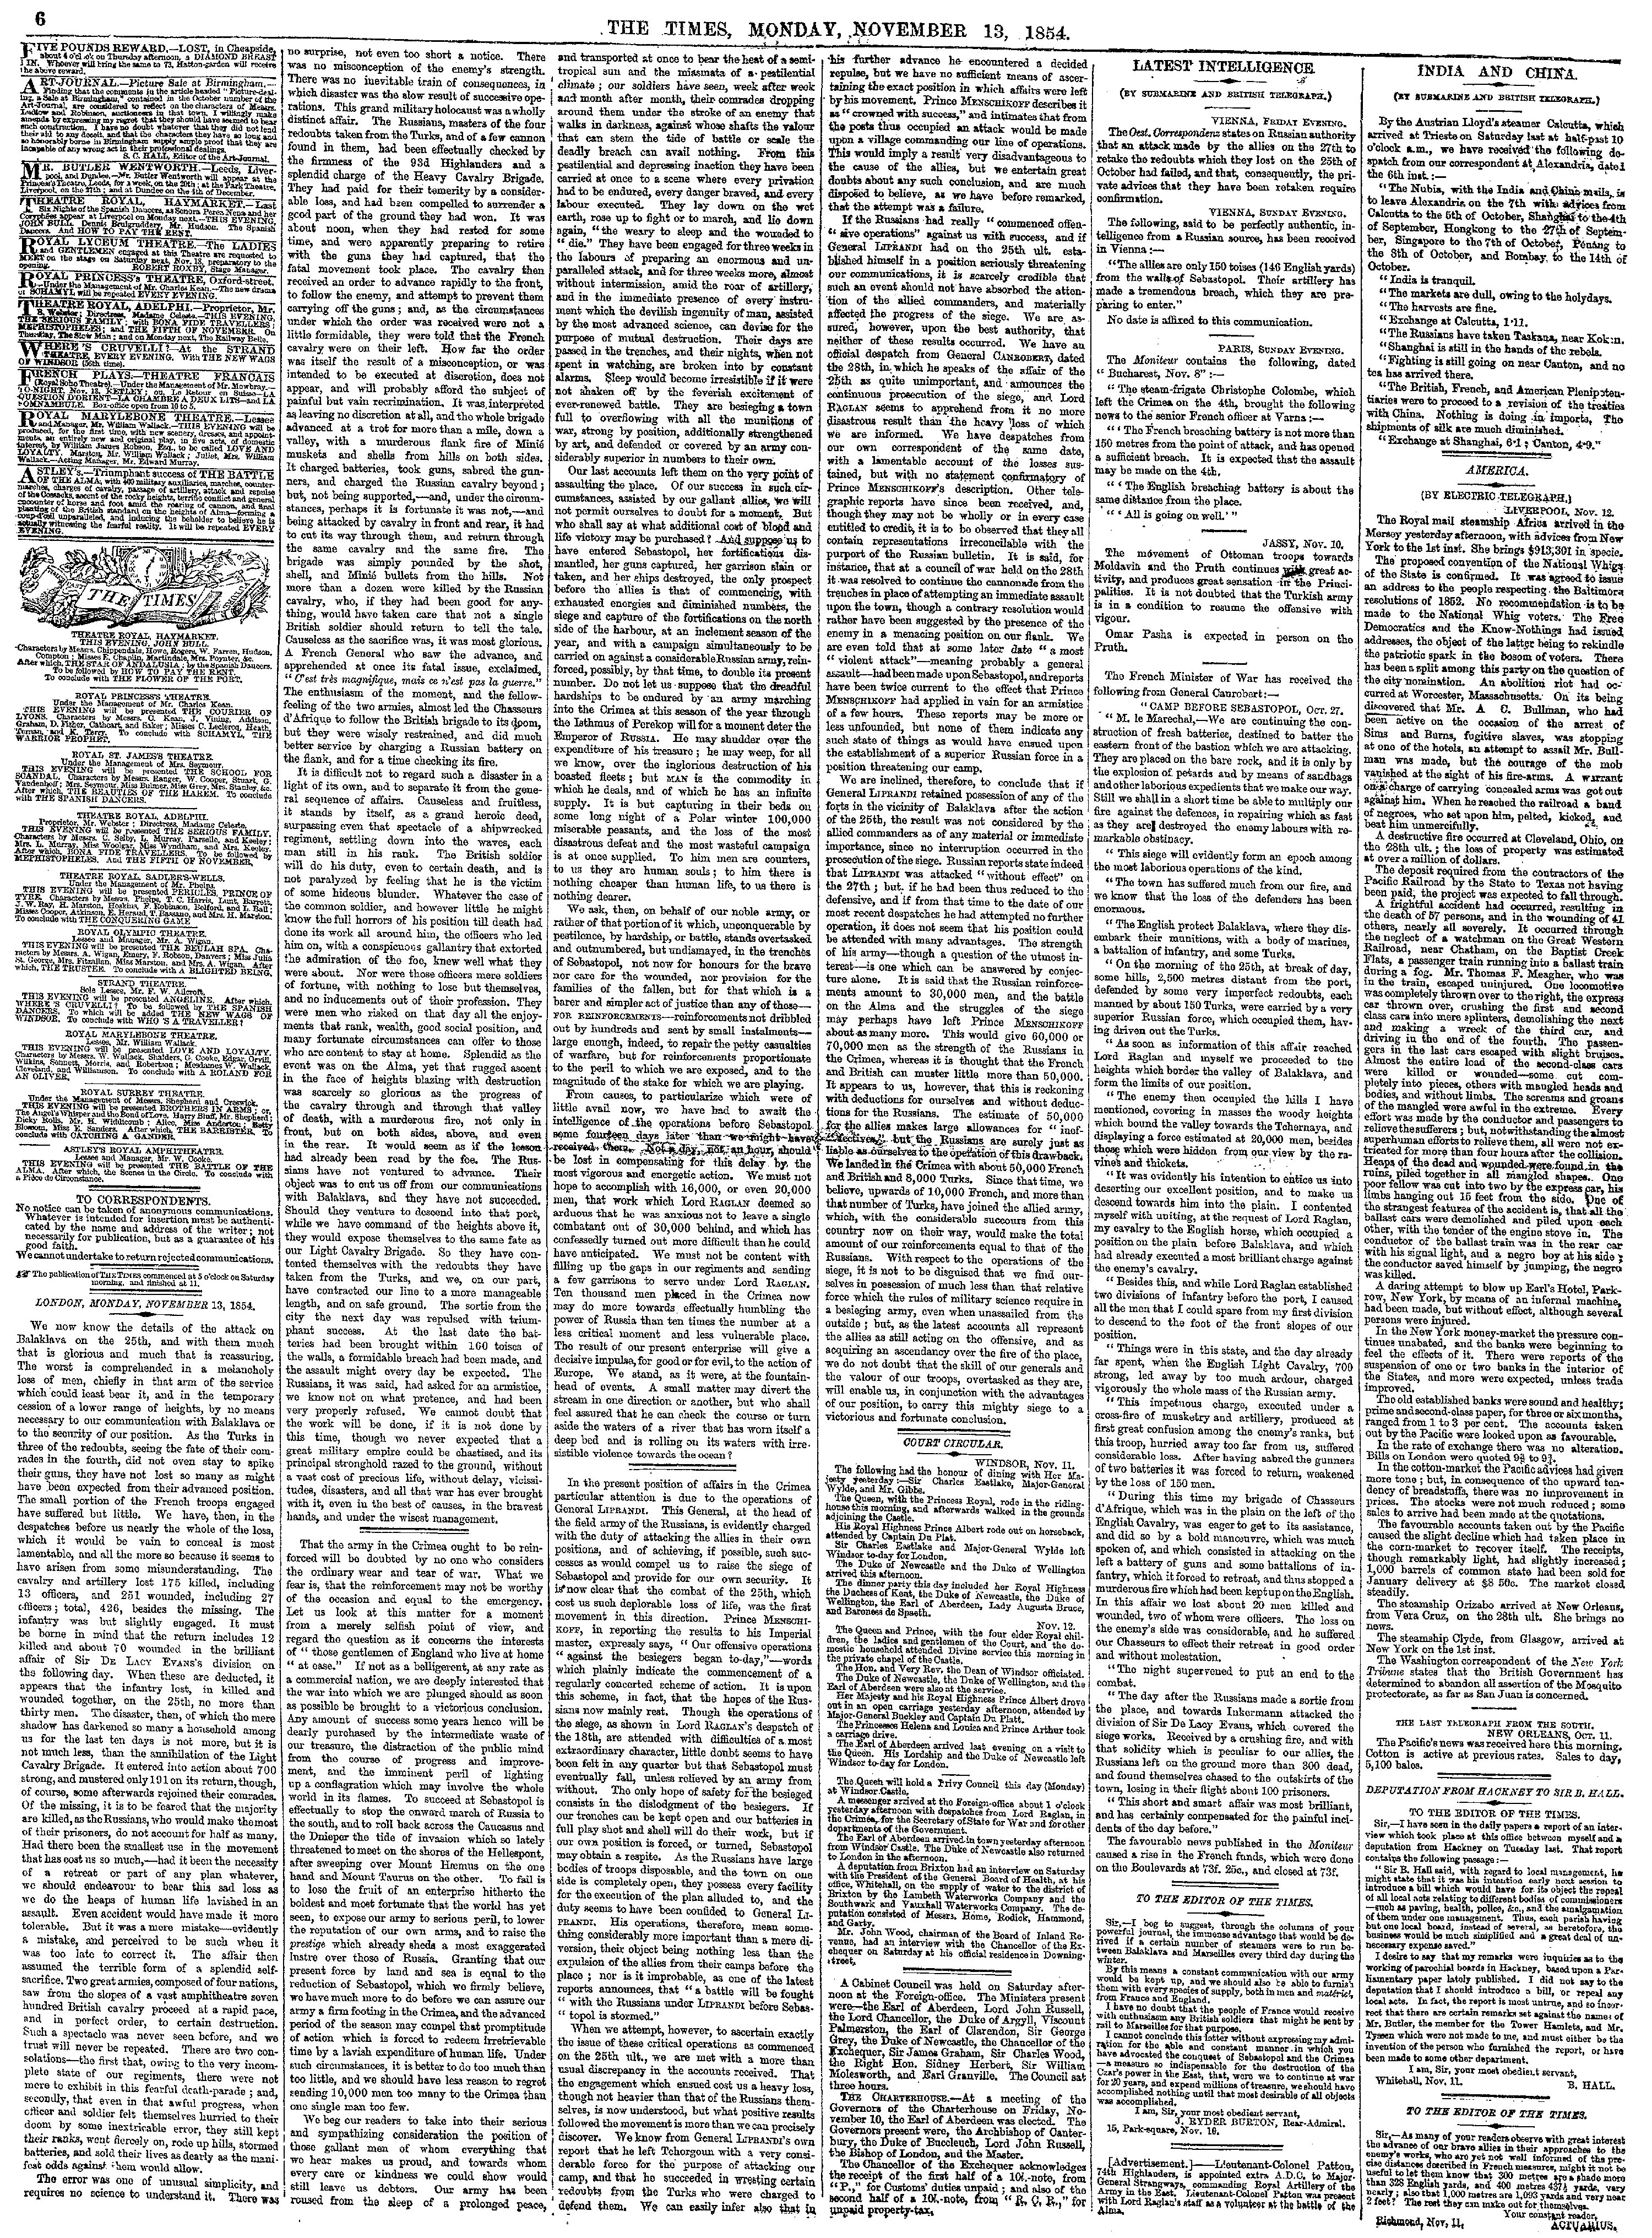 Times editorial piece on the Charge of the Light Brigade [page: 6]